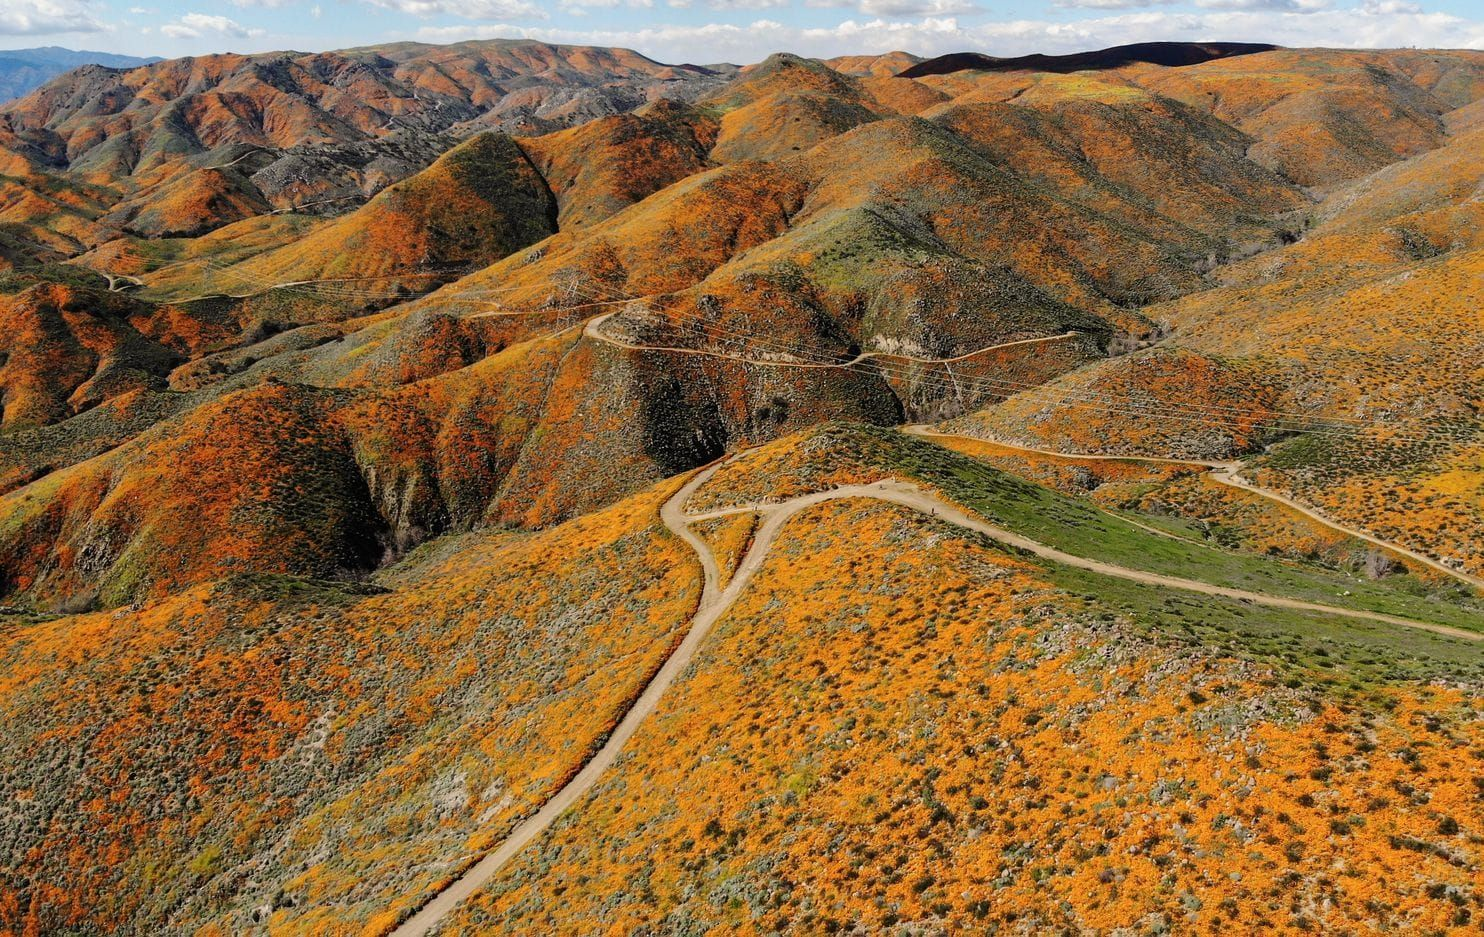 California's super bloom is the best in years, so vibrant